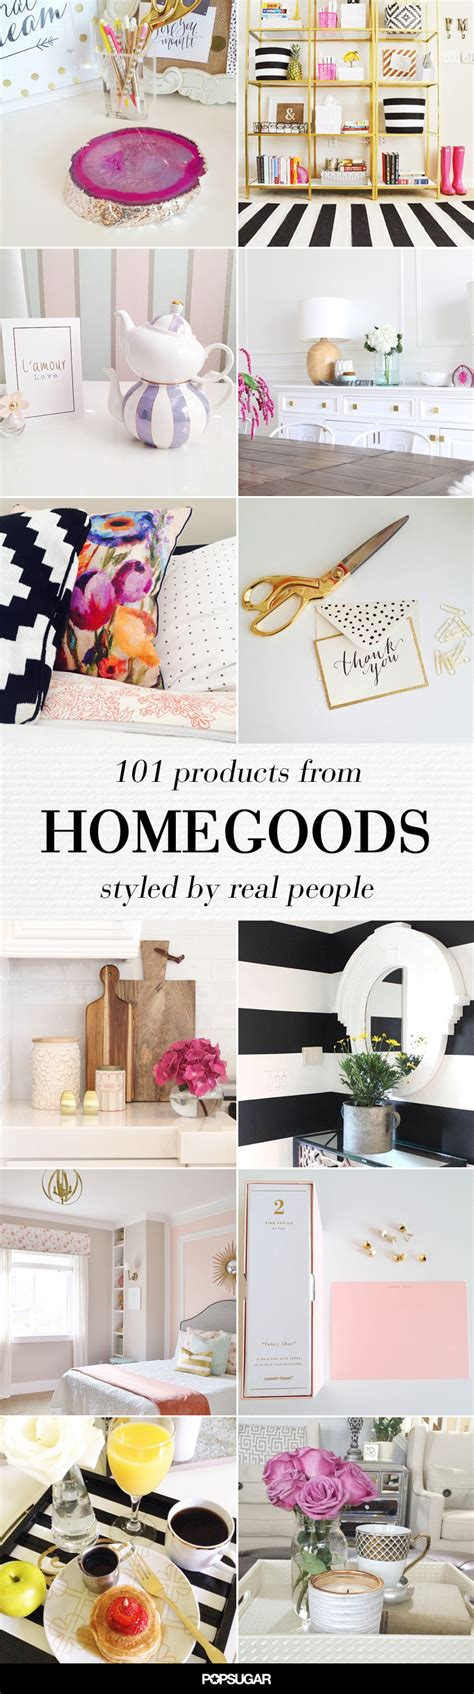 home goods home decor 101 amazing pieces you d never guess were from homegoods